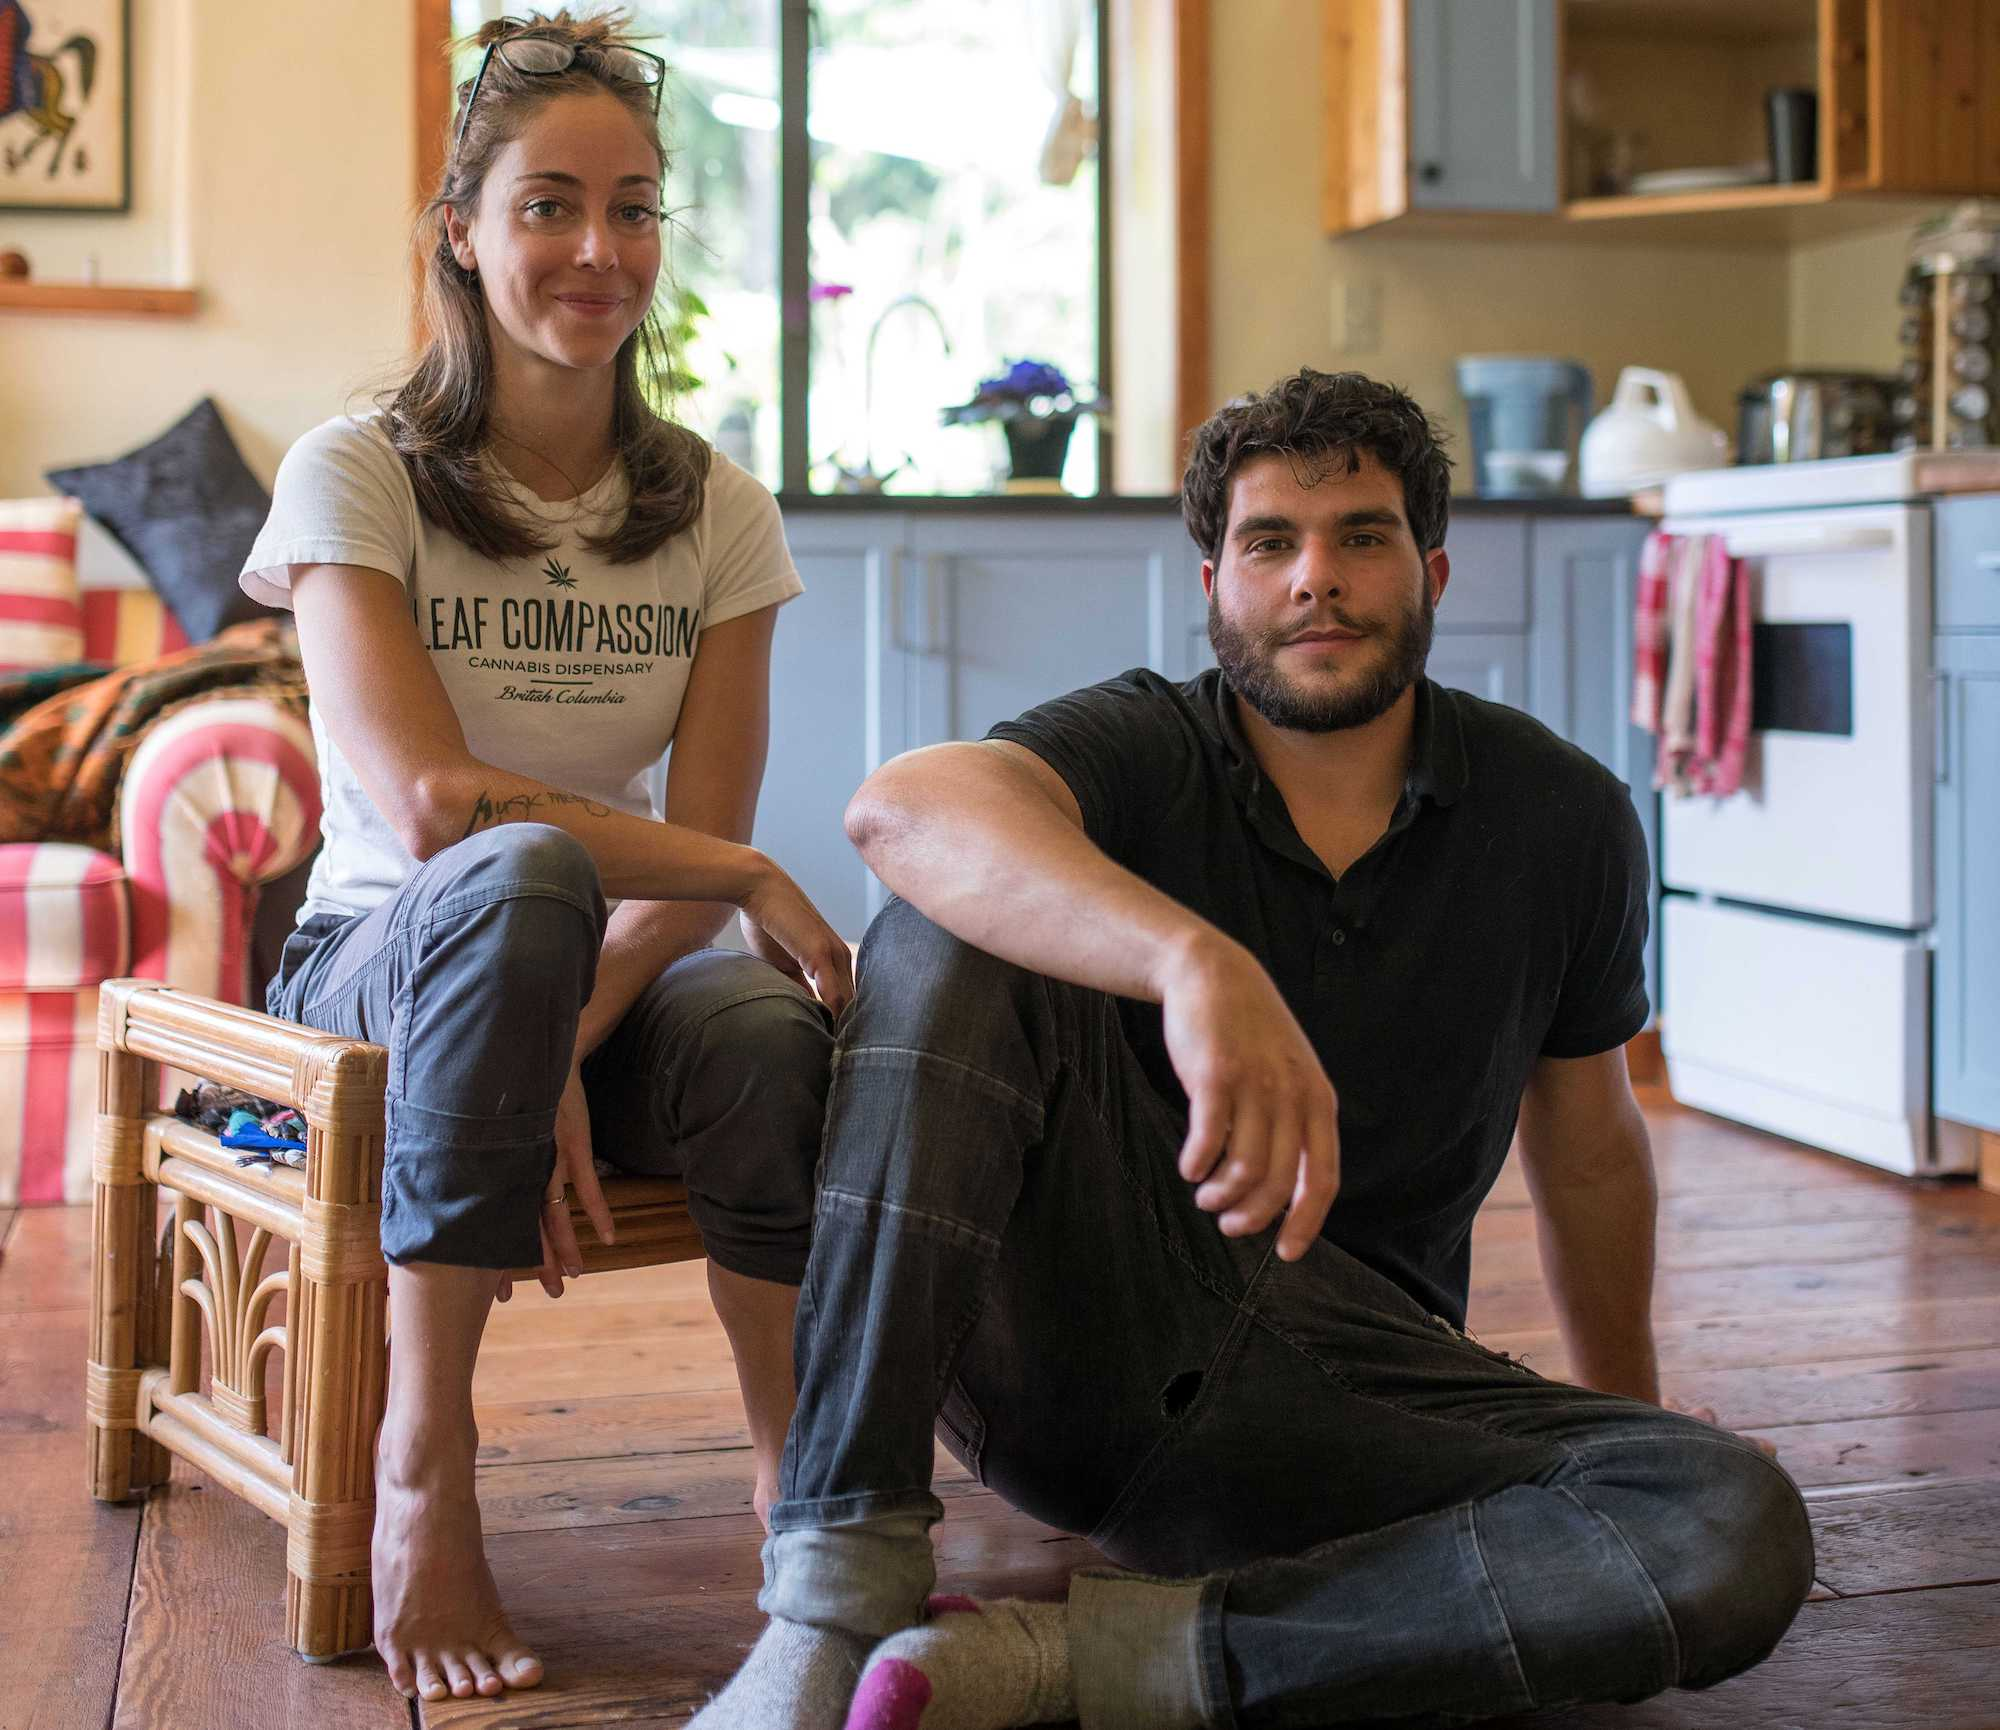 Meet Omrane and Sarah—the entrepreneurs about to lose their home